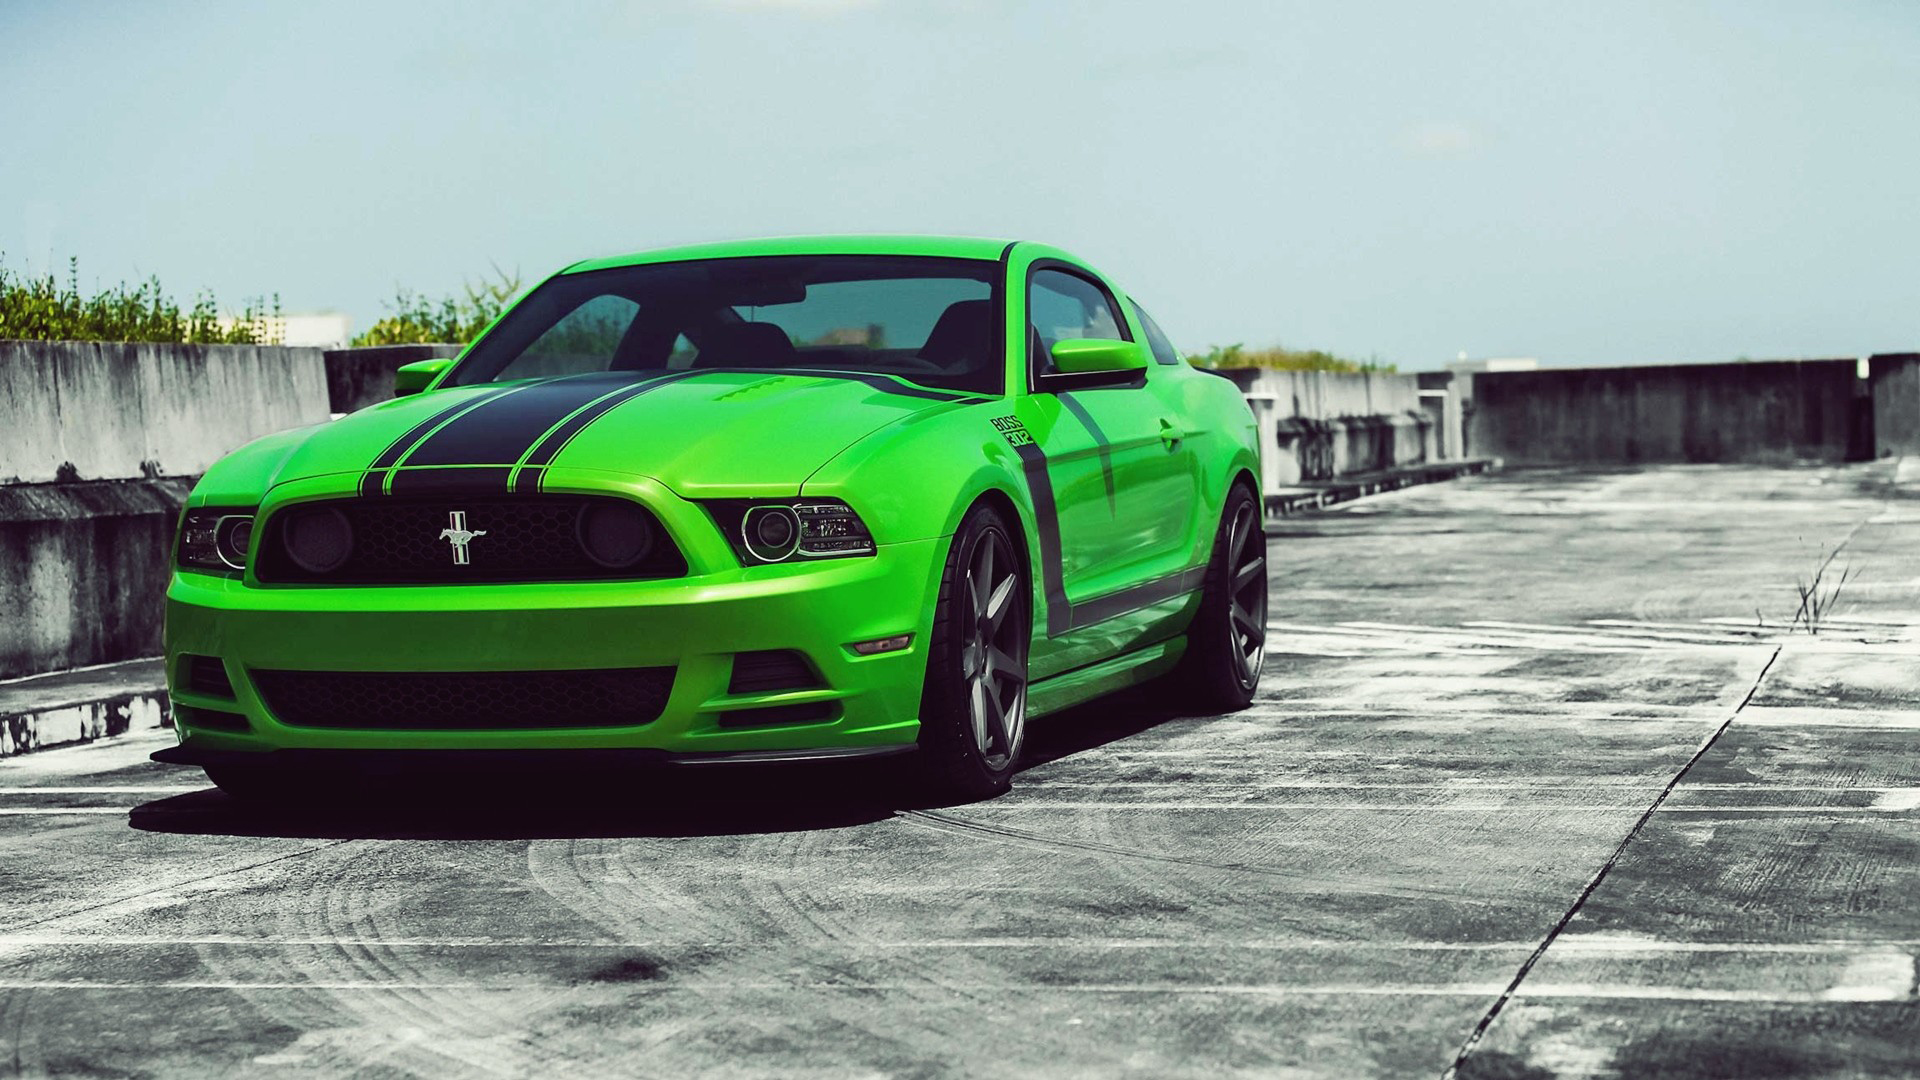 Ford Mustang HD Wallpapers  Backgrounds  Wallpaper  1920x1080